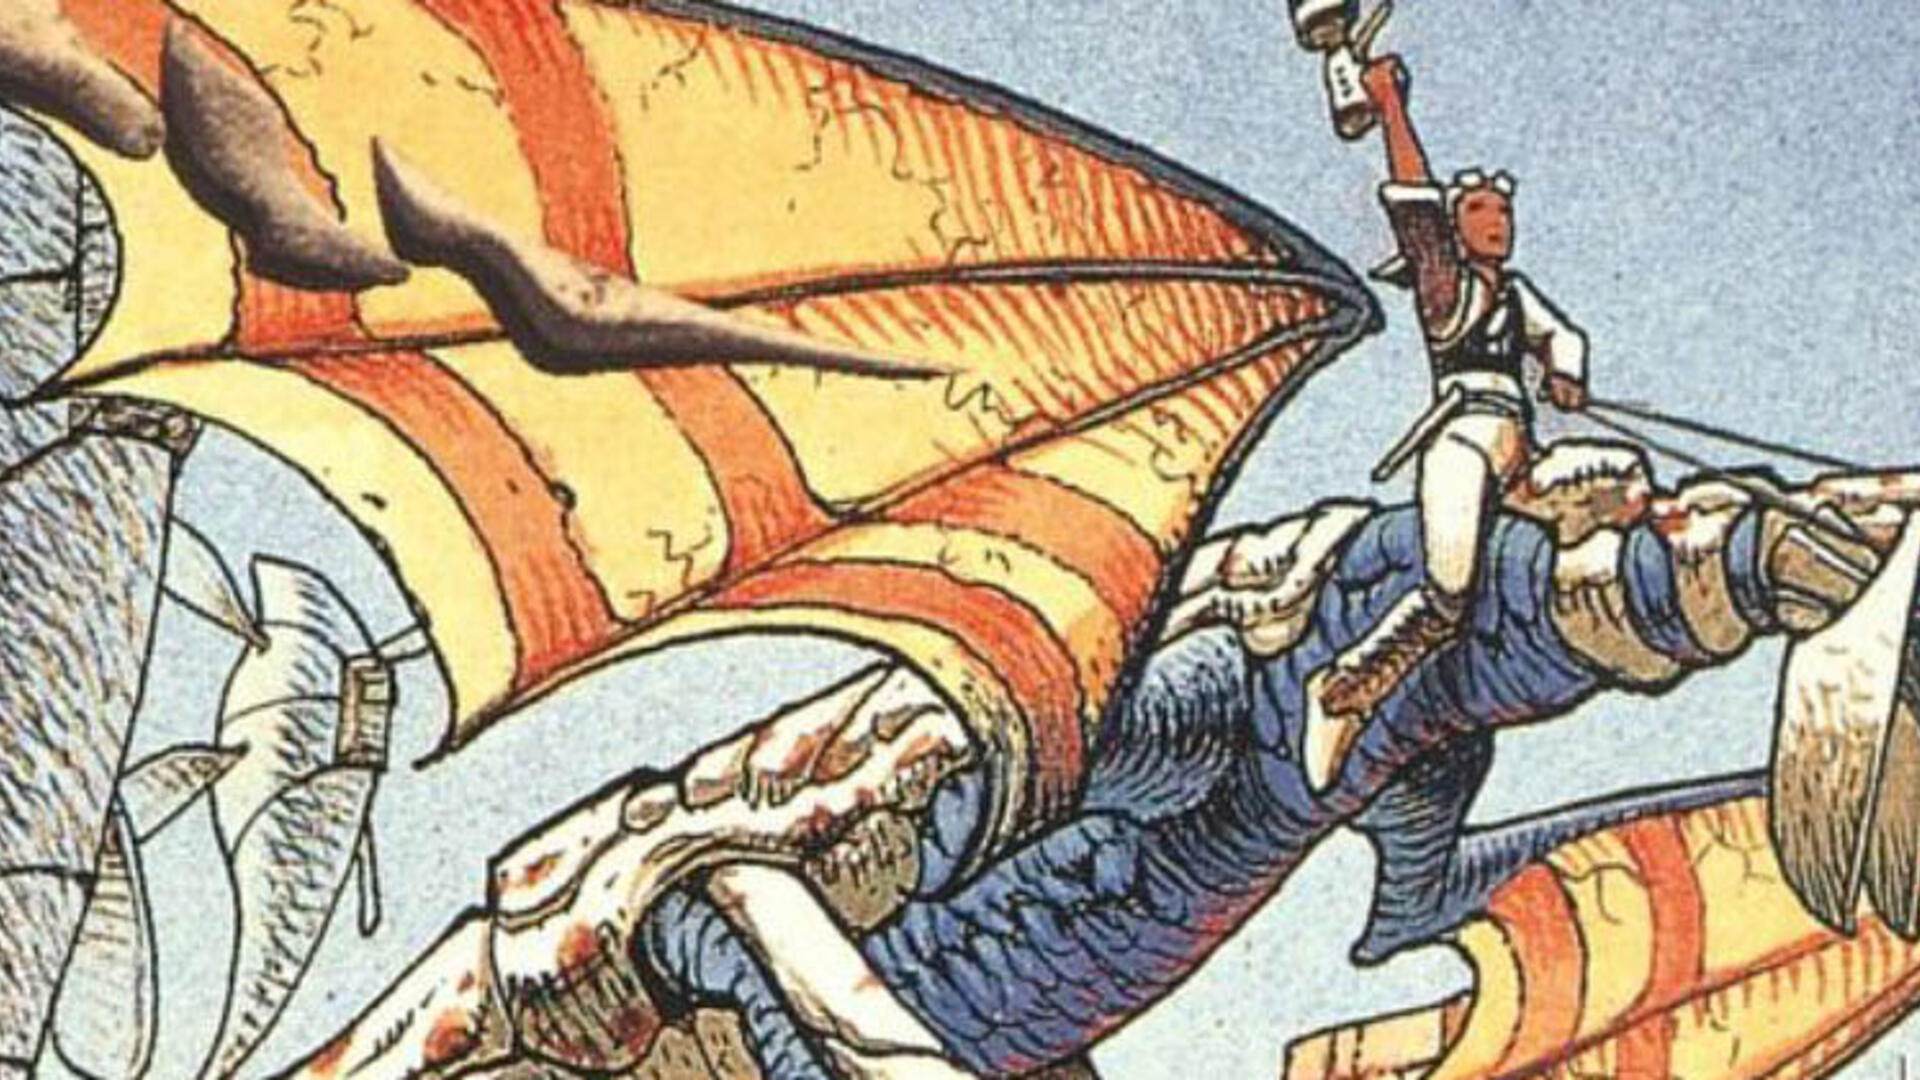 Panzer Dragoon Creator Reveals the Original Idea for the Series, and It's Even Weirder Than You'd Expect